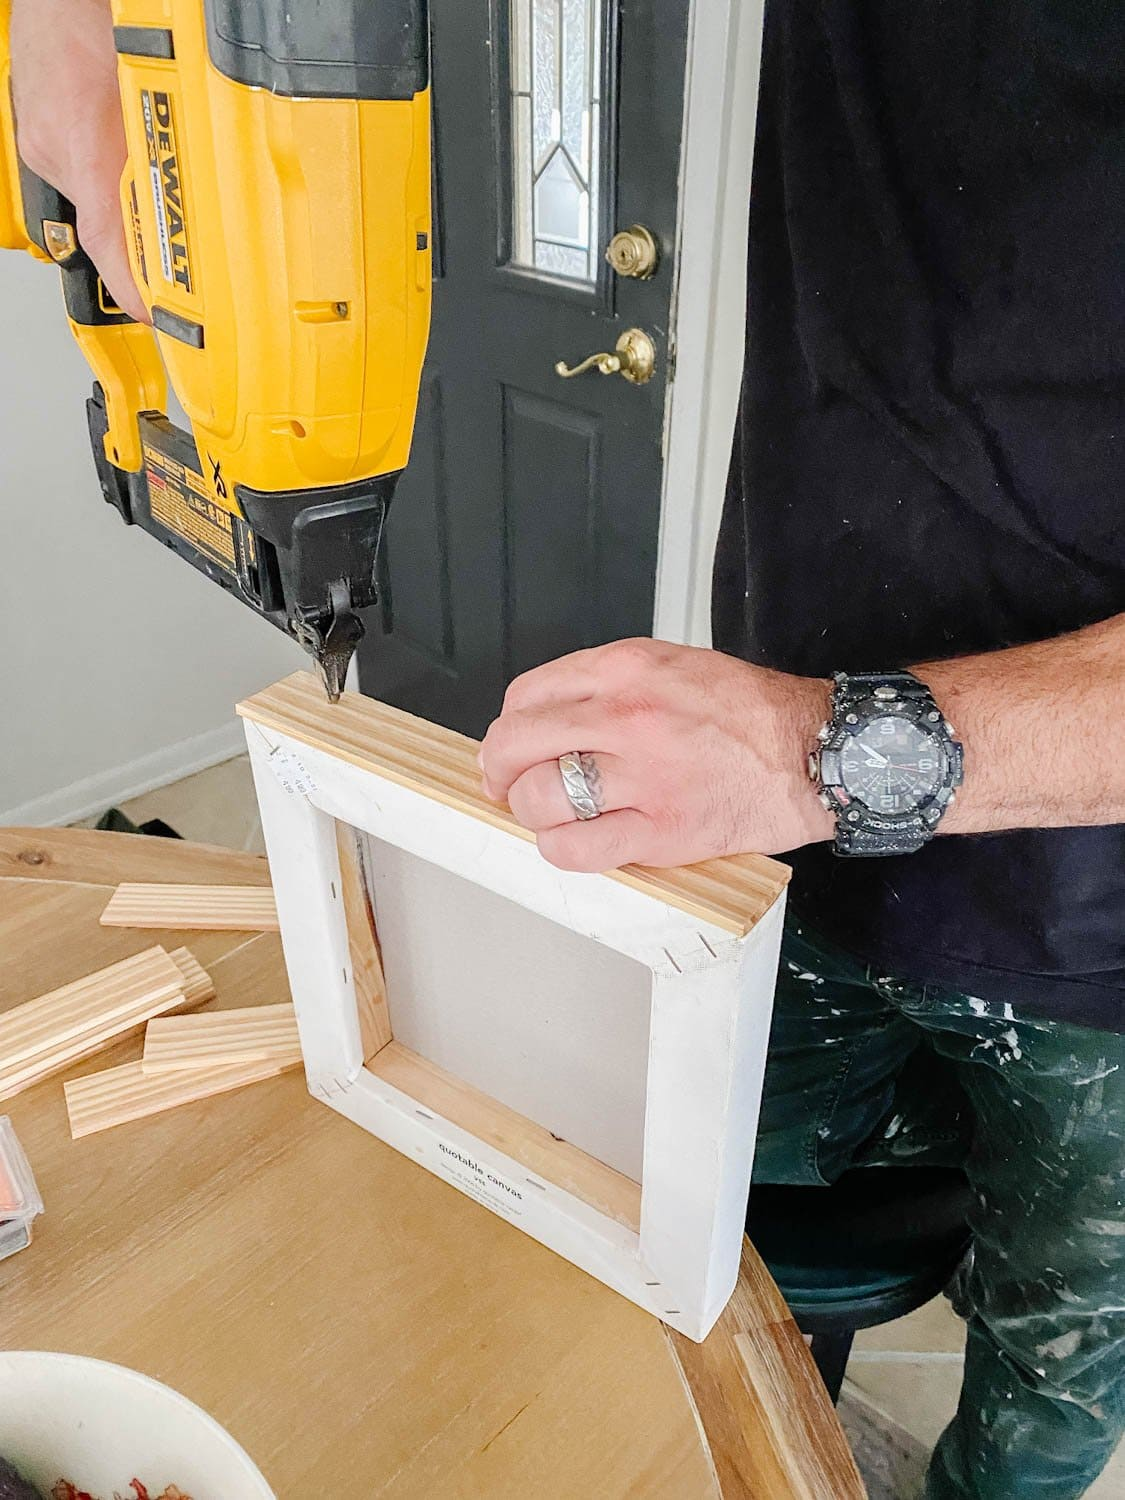 nailing lattice strips to a canvas for a DIY frame